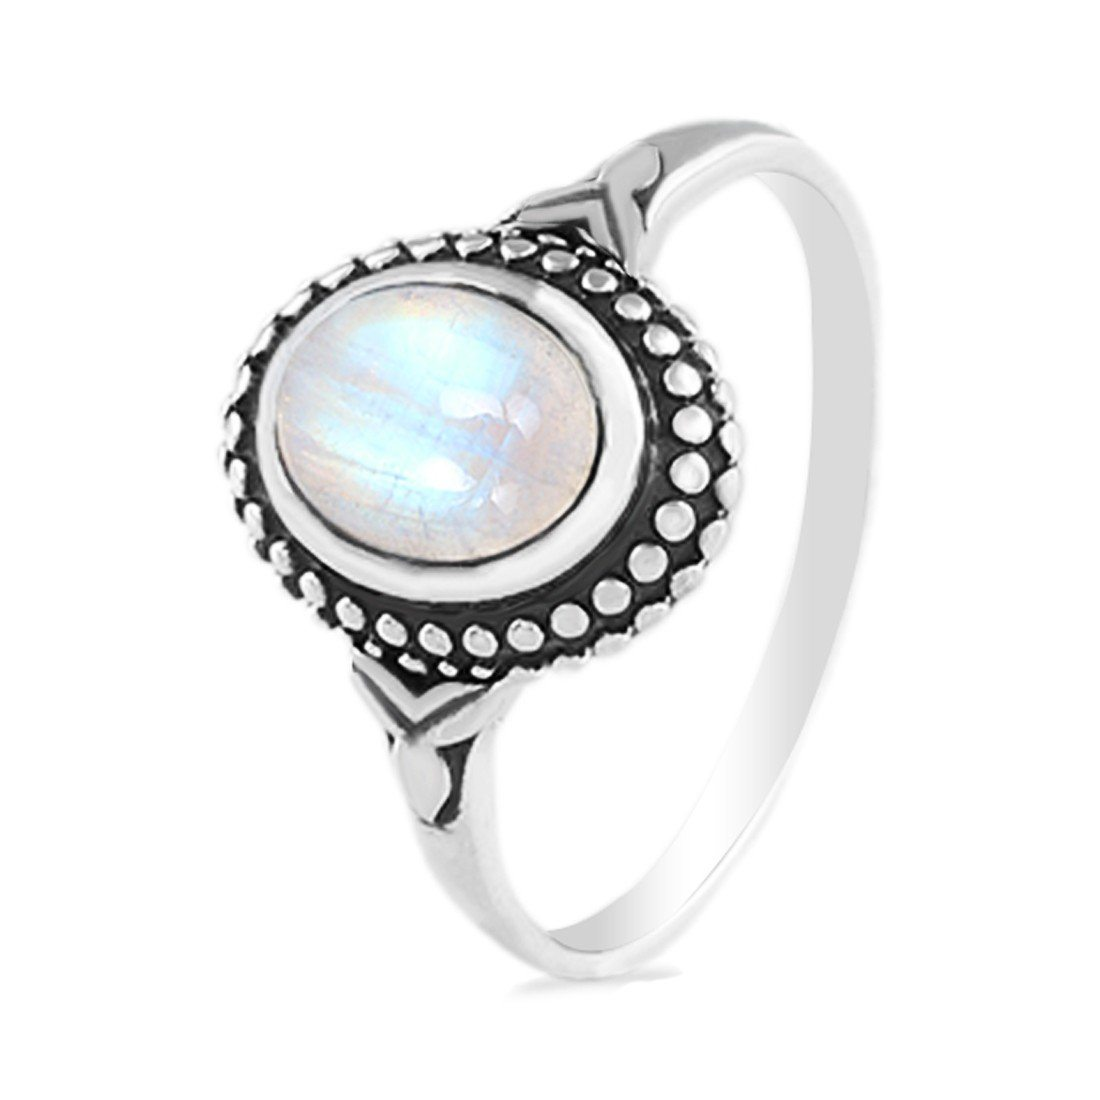 Moonstone Ring-Humble Siren Moonstone Ring 925 SILVER & MOONSTONE